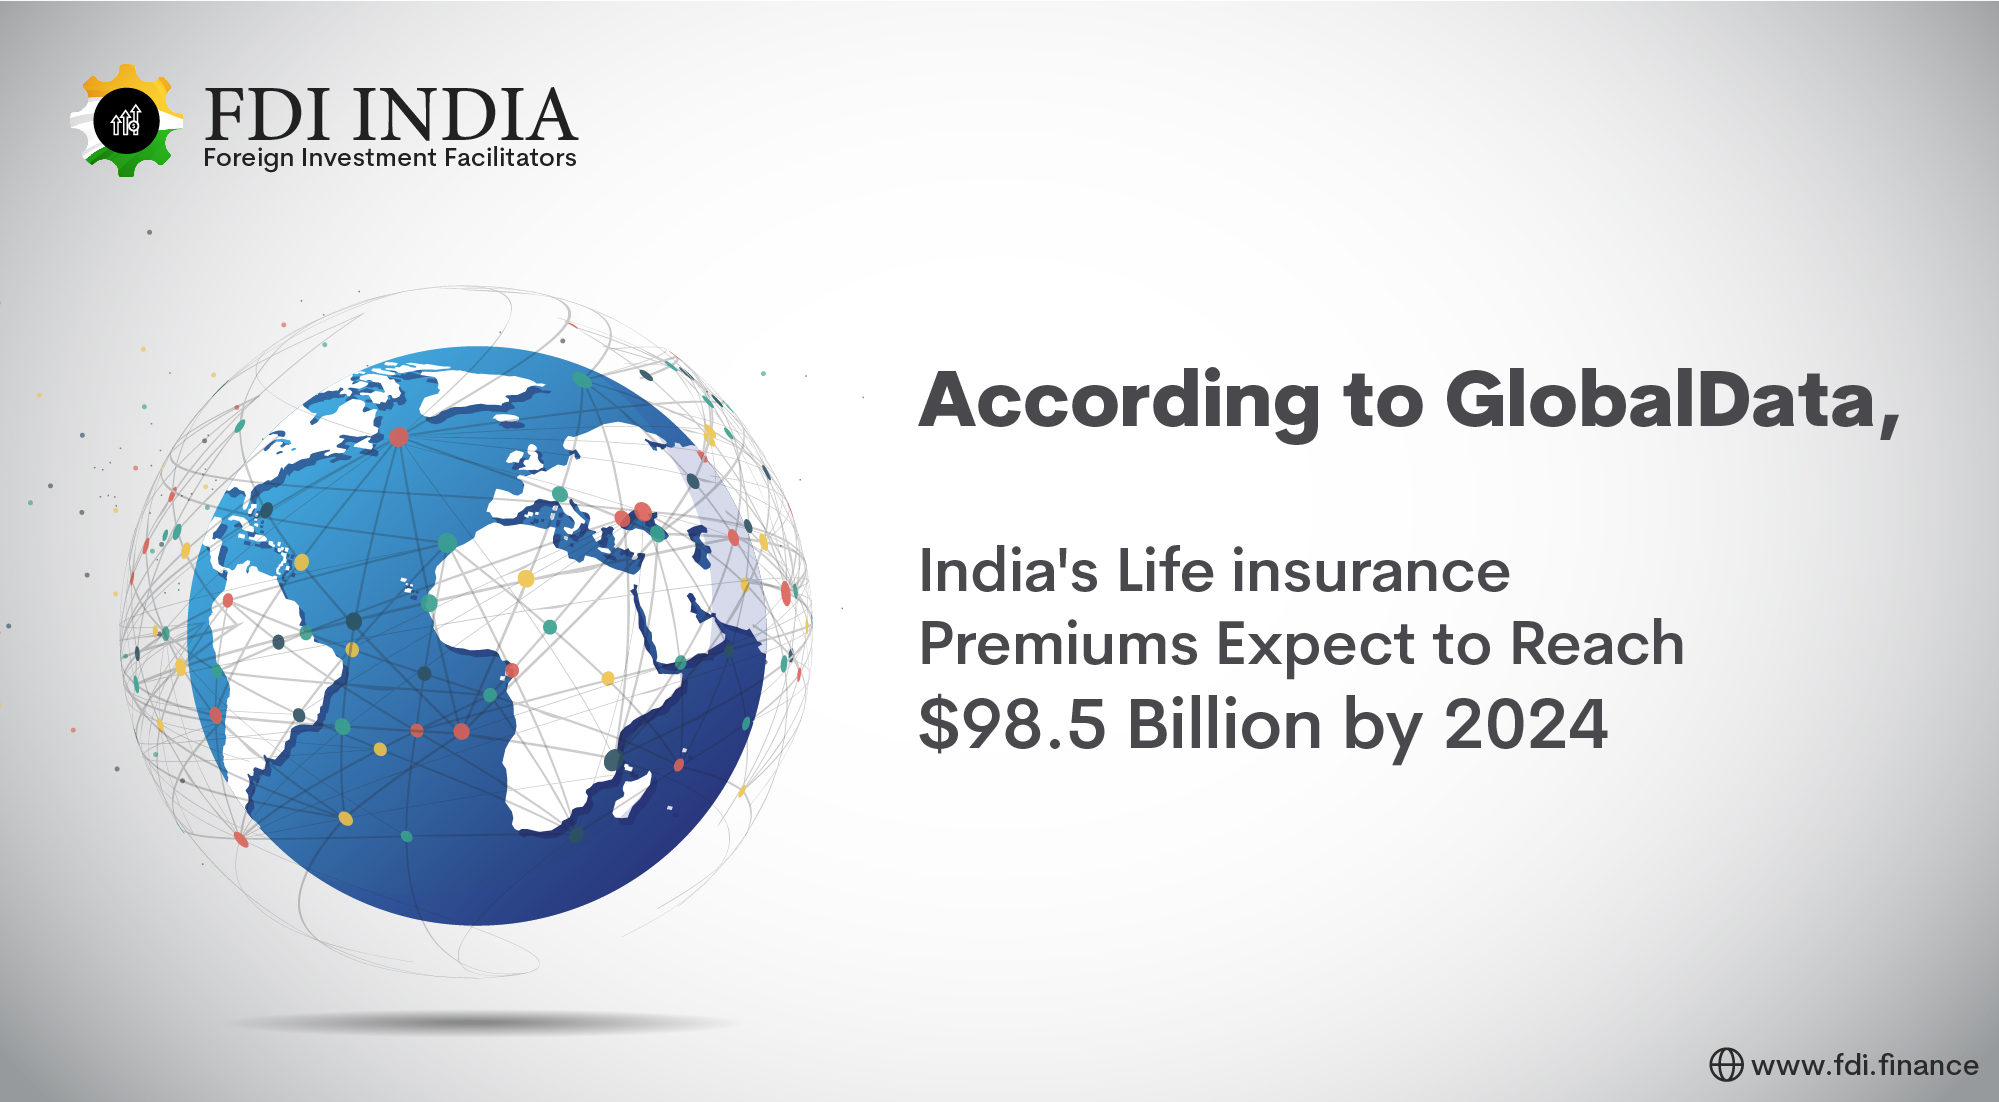 According to GlobalData, India's Life Insurance Premiums Expect to Reach $98.5 Billion by 2024